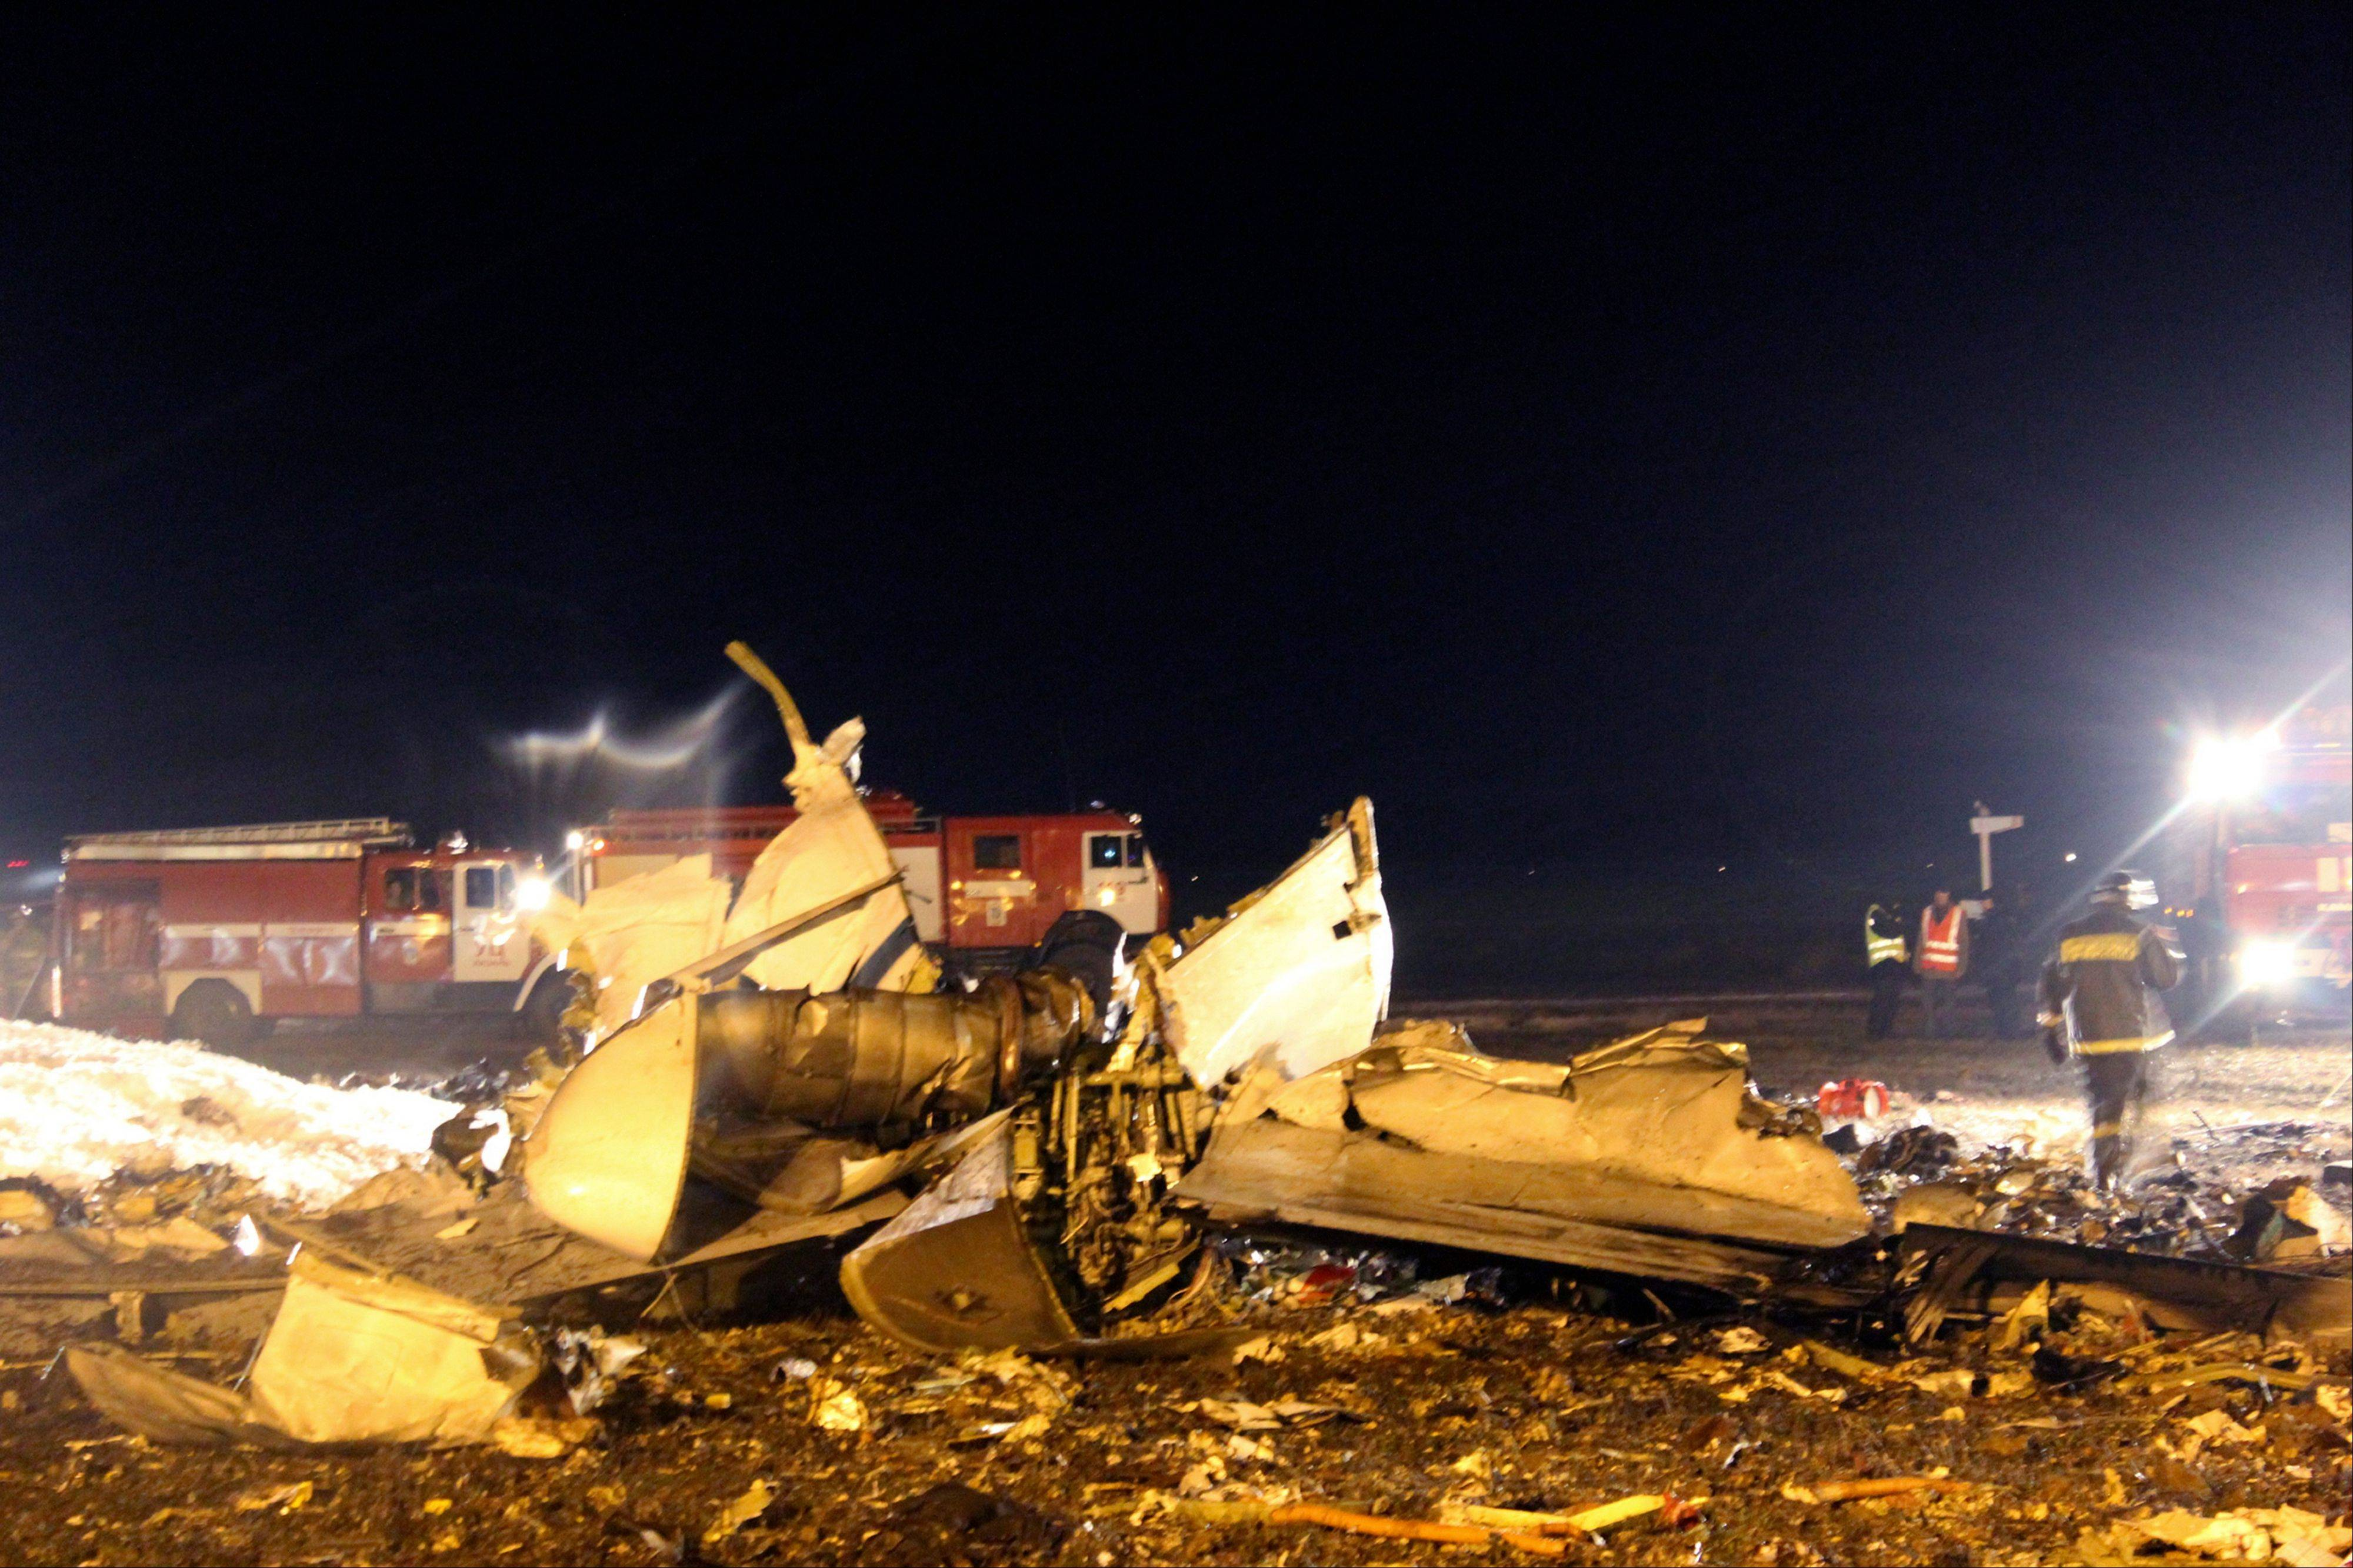 In this photo provided by Russian Emergency Situations Ministry, firefighters and rescuers work at the crash site of a Russian passenger airliner near Kazan, the capital of the Tatarstan republic, about 450 miles east of Moscow.